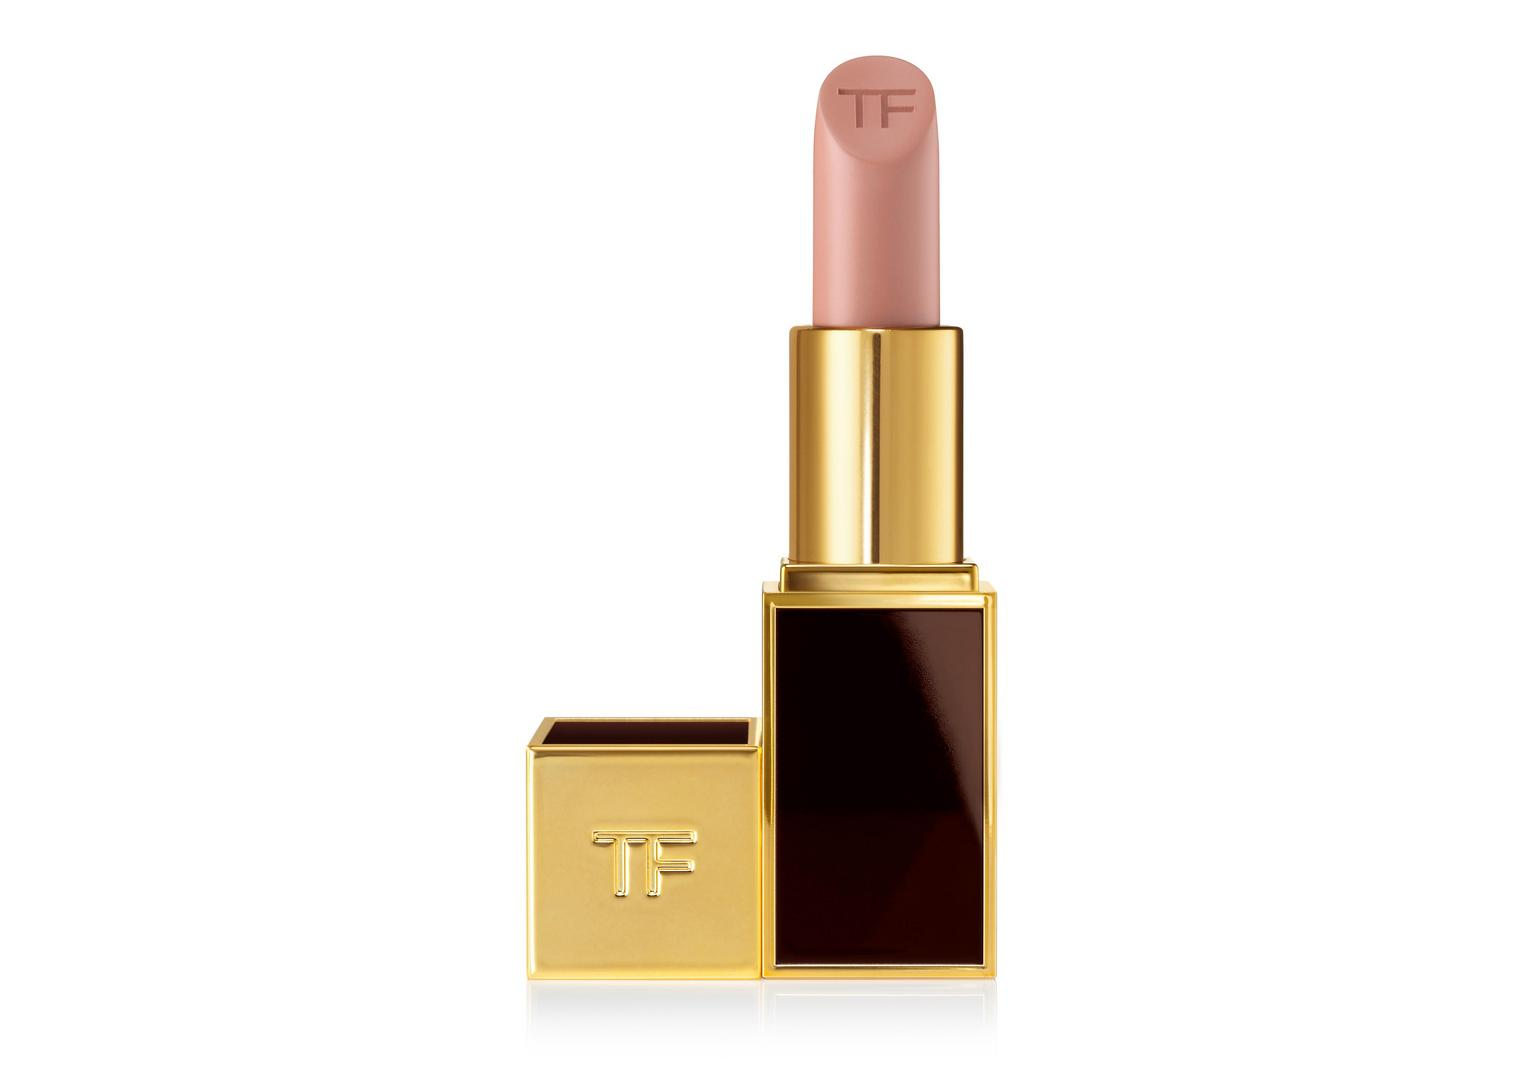 $52 - Tom Ford - Blush Nude